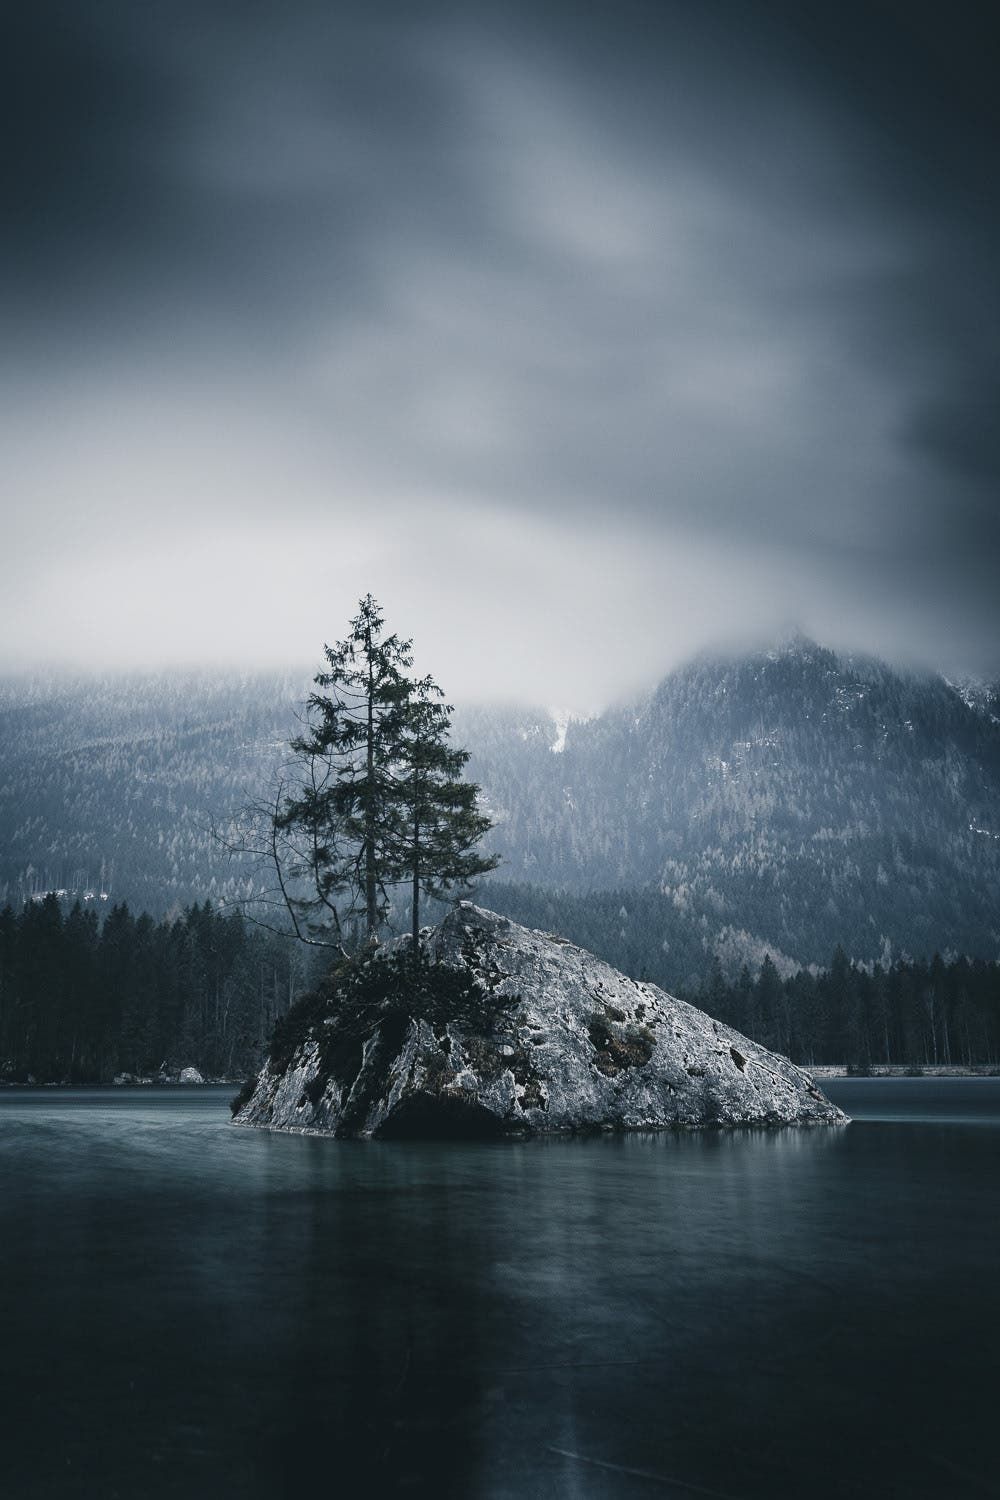 Nils Leithold Takes Moody, Cinematic Images of the Alps